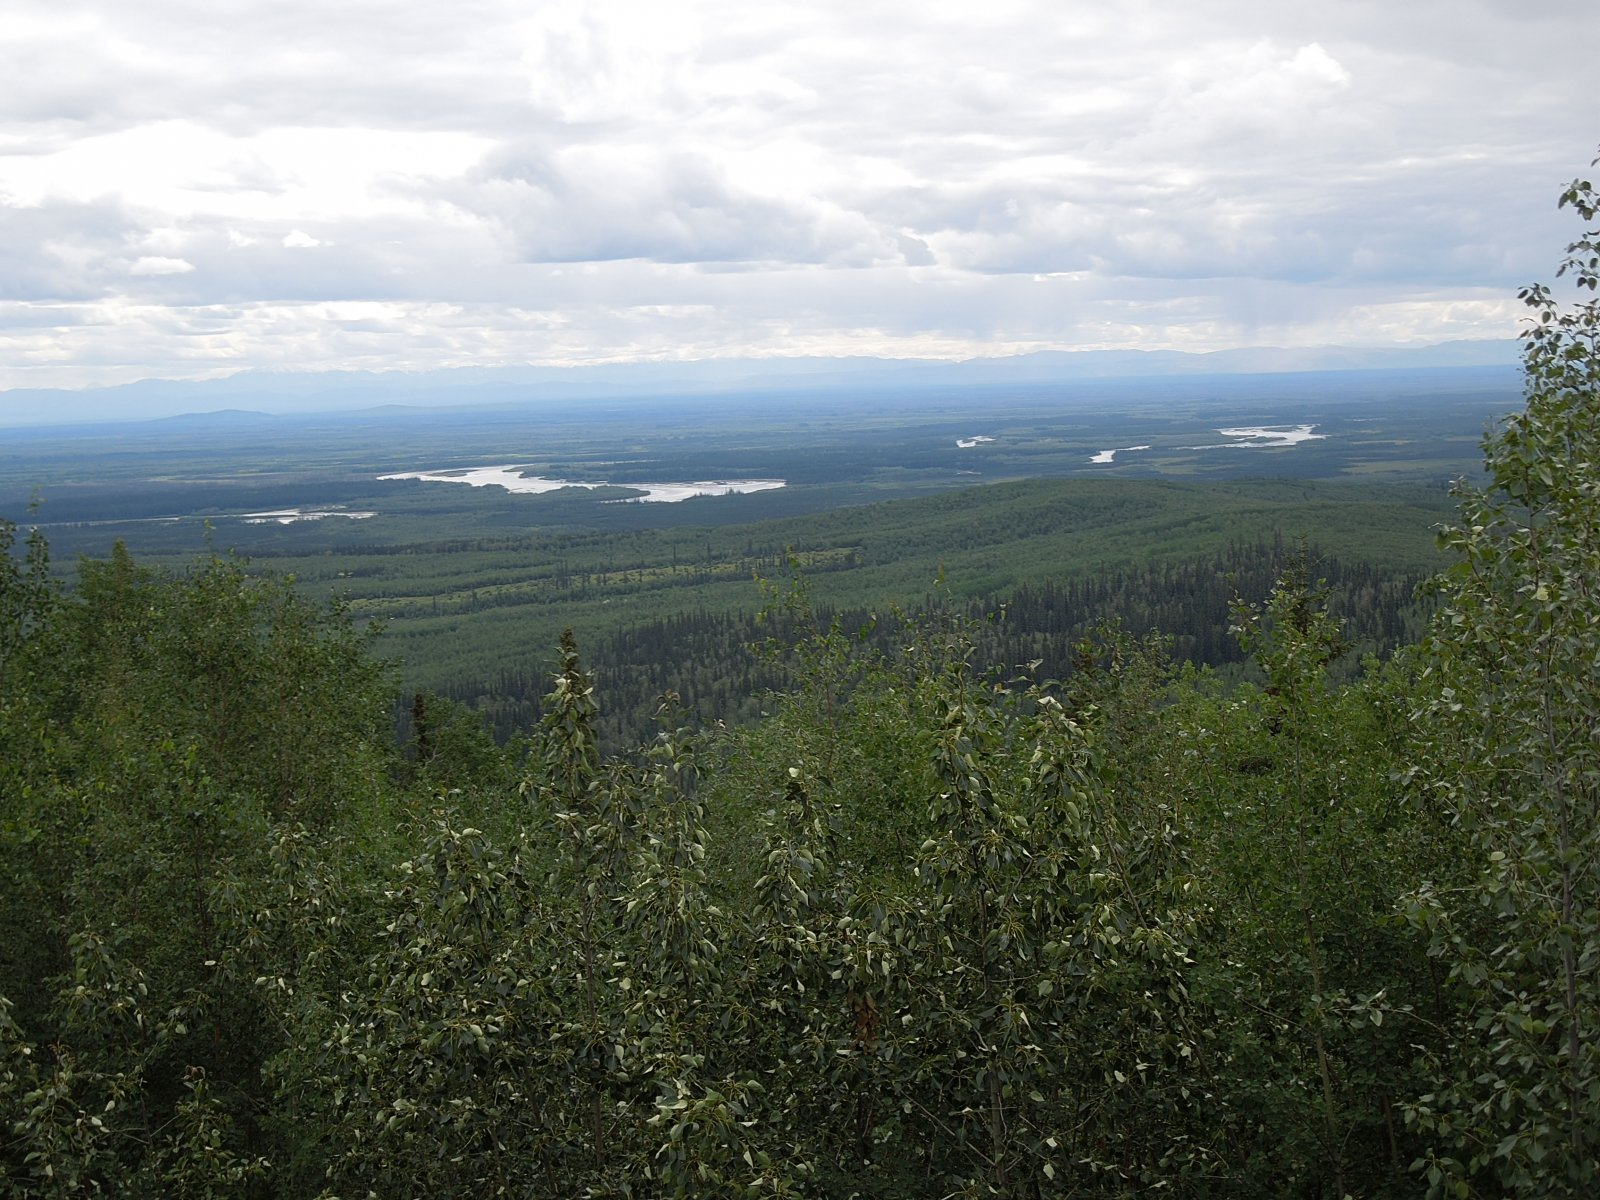 Click image for larger version  Name:Fairbanks 038.jpg Views:52 Size:409.2 KB ID:221294